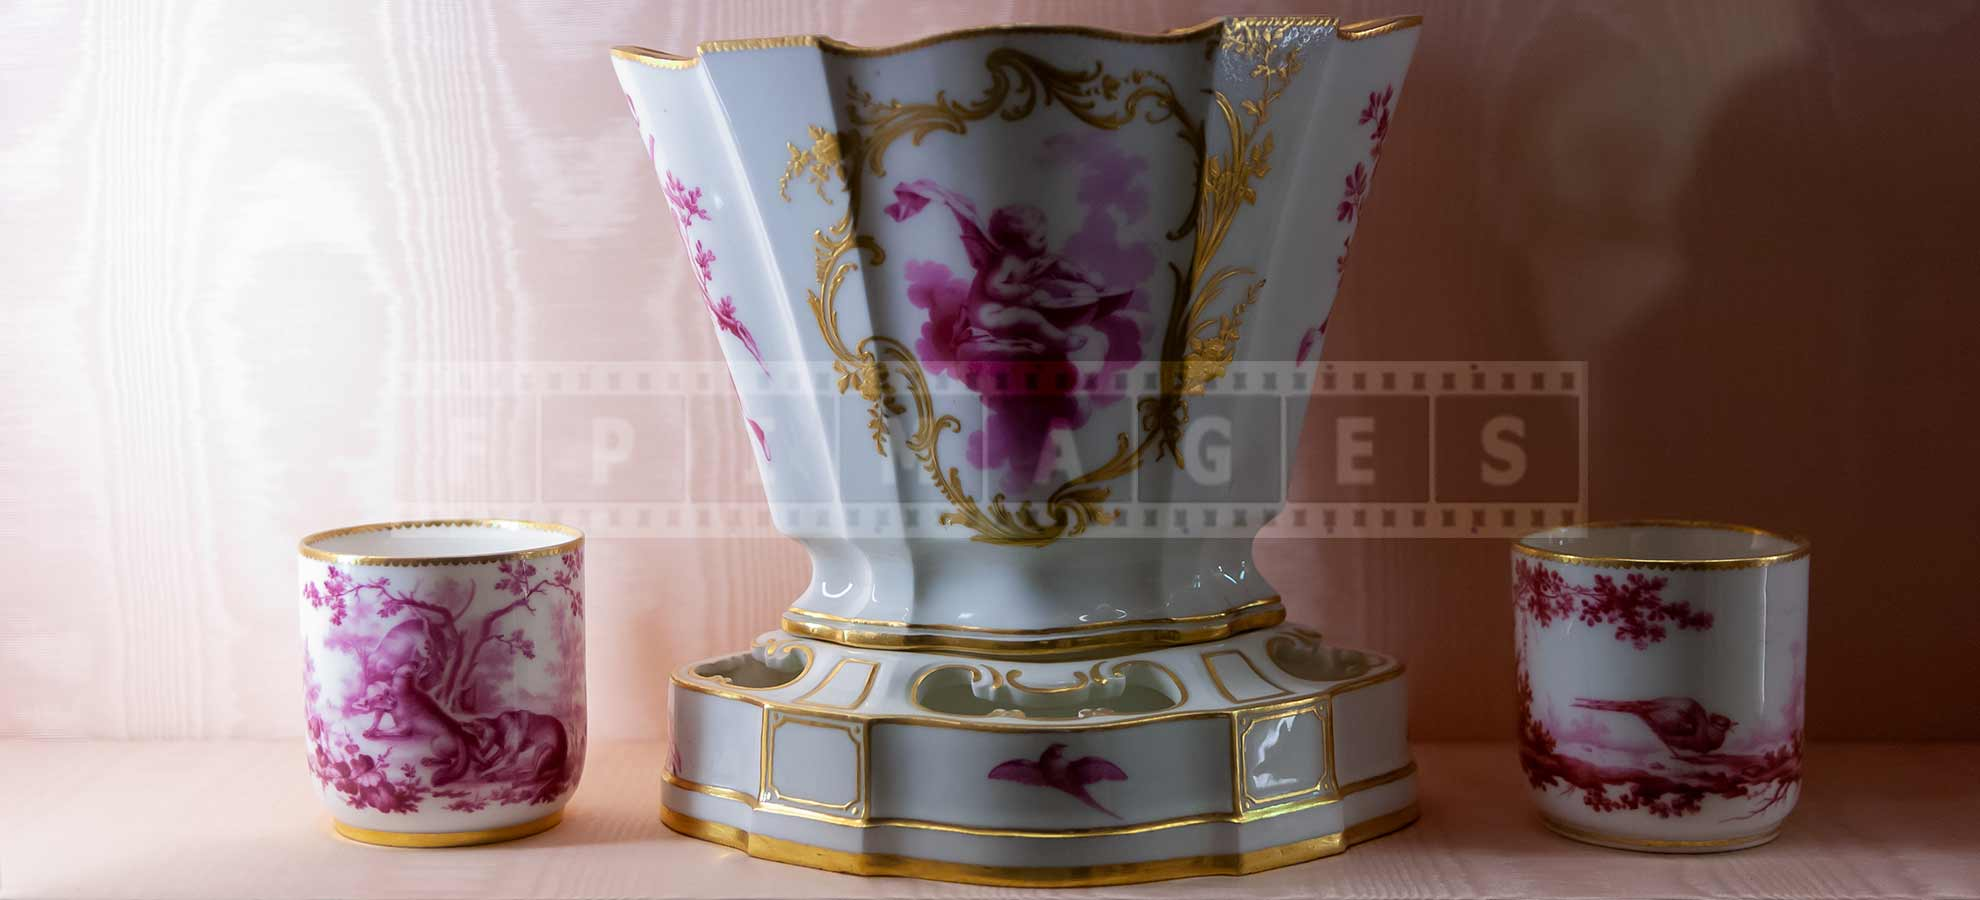 Porcelain cups and a vase with golden accents